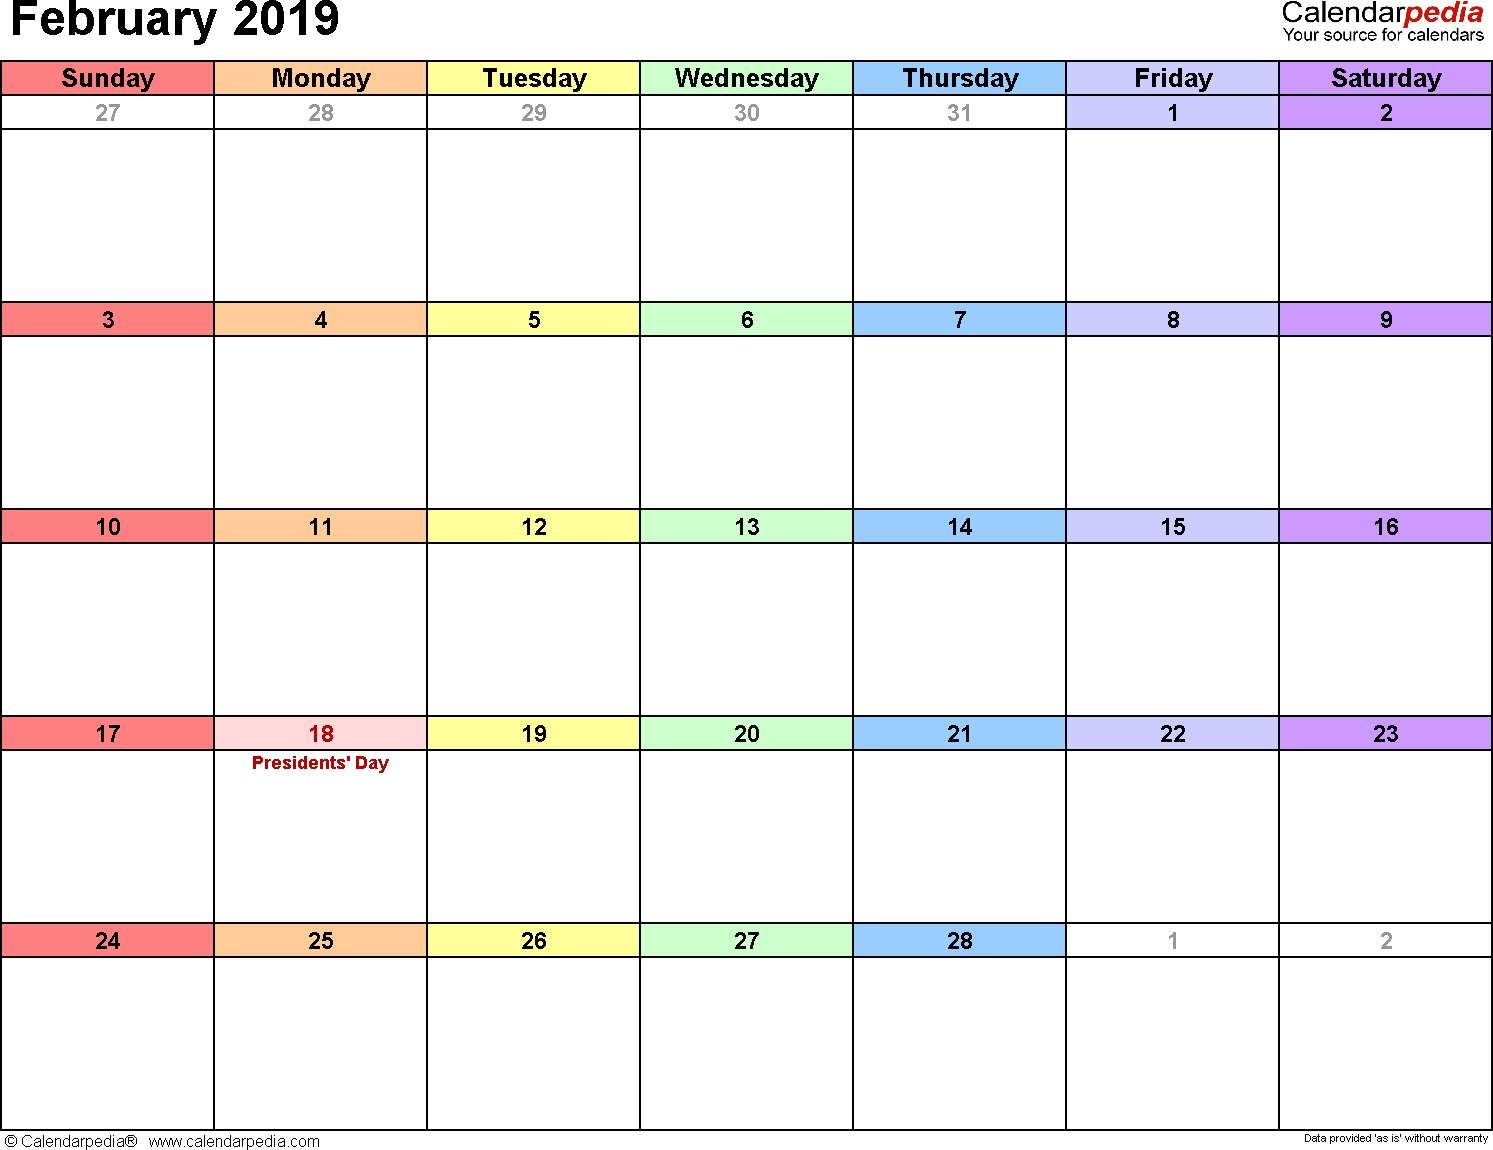 Calendarpedia - Downloadable Calendars - Yearly/Monthly